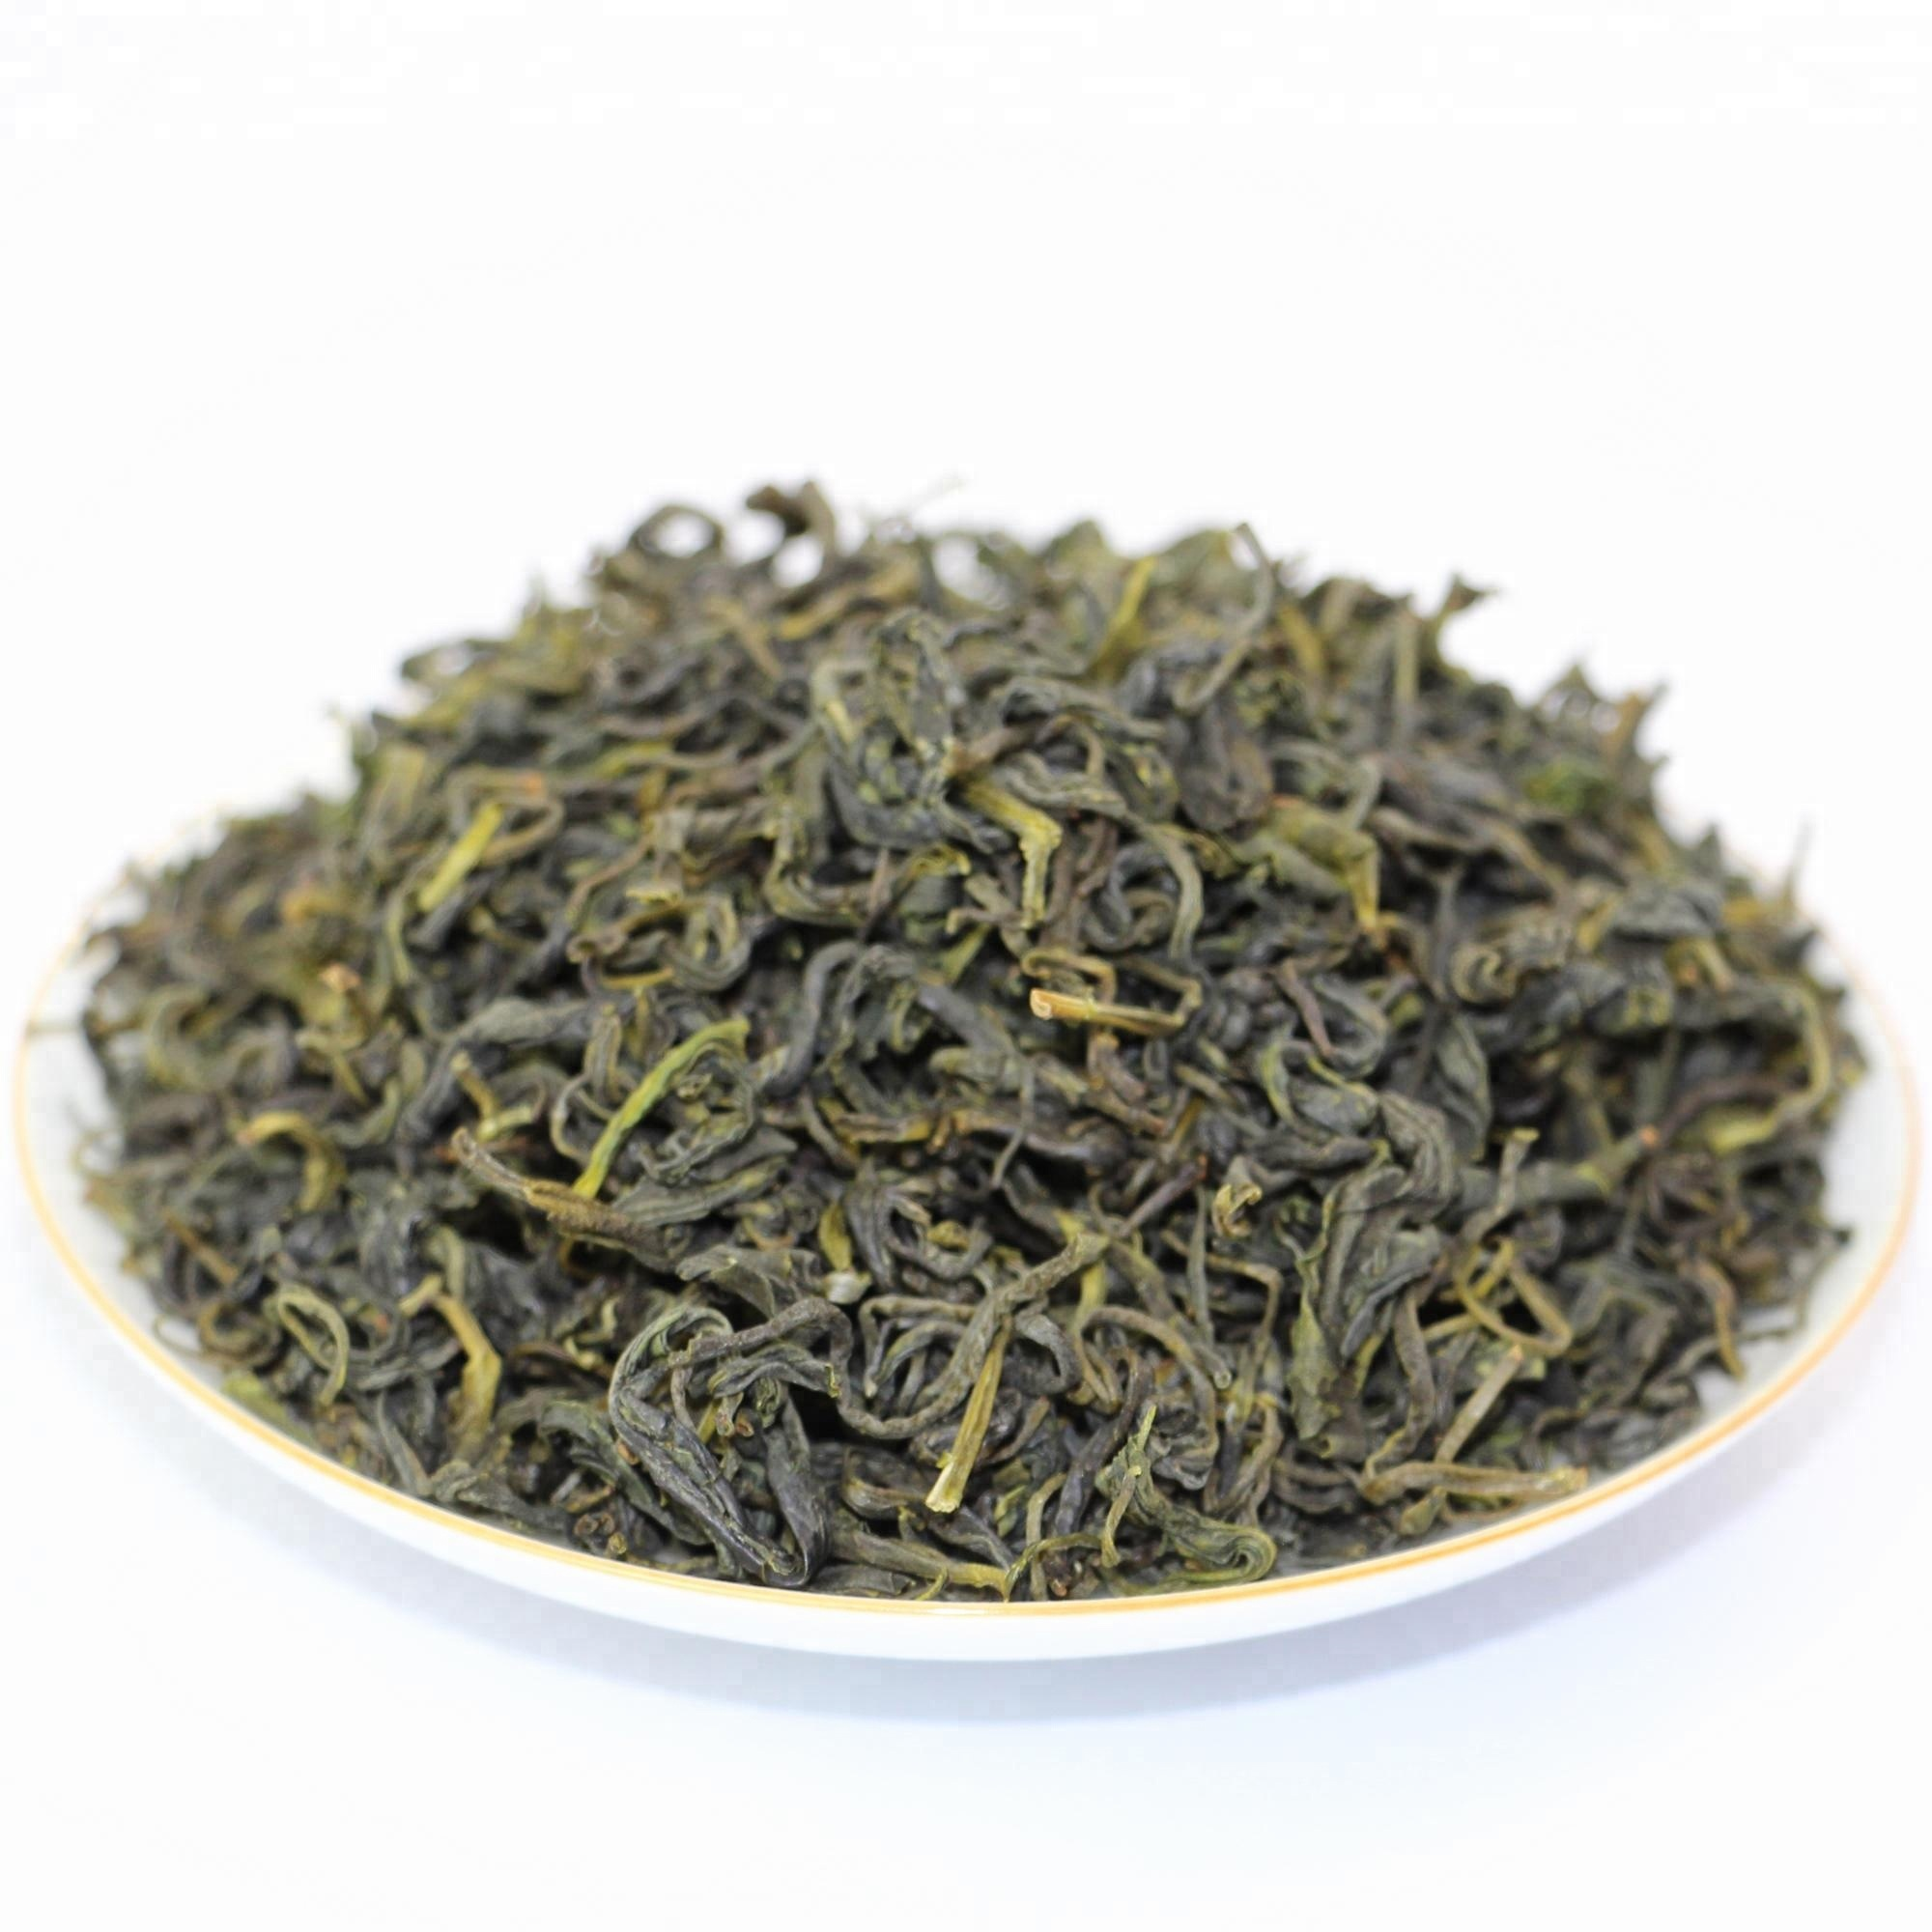 D A Mao Jian Green Tea Leaves First Class Green Lotus Leaf Price Per Kg Green Tea Afghanistan Buy Green Lotus Leaf Green Tea Afghanistan Green Tea Product On Alibaba Com